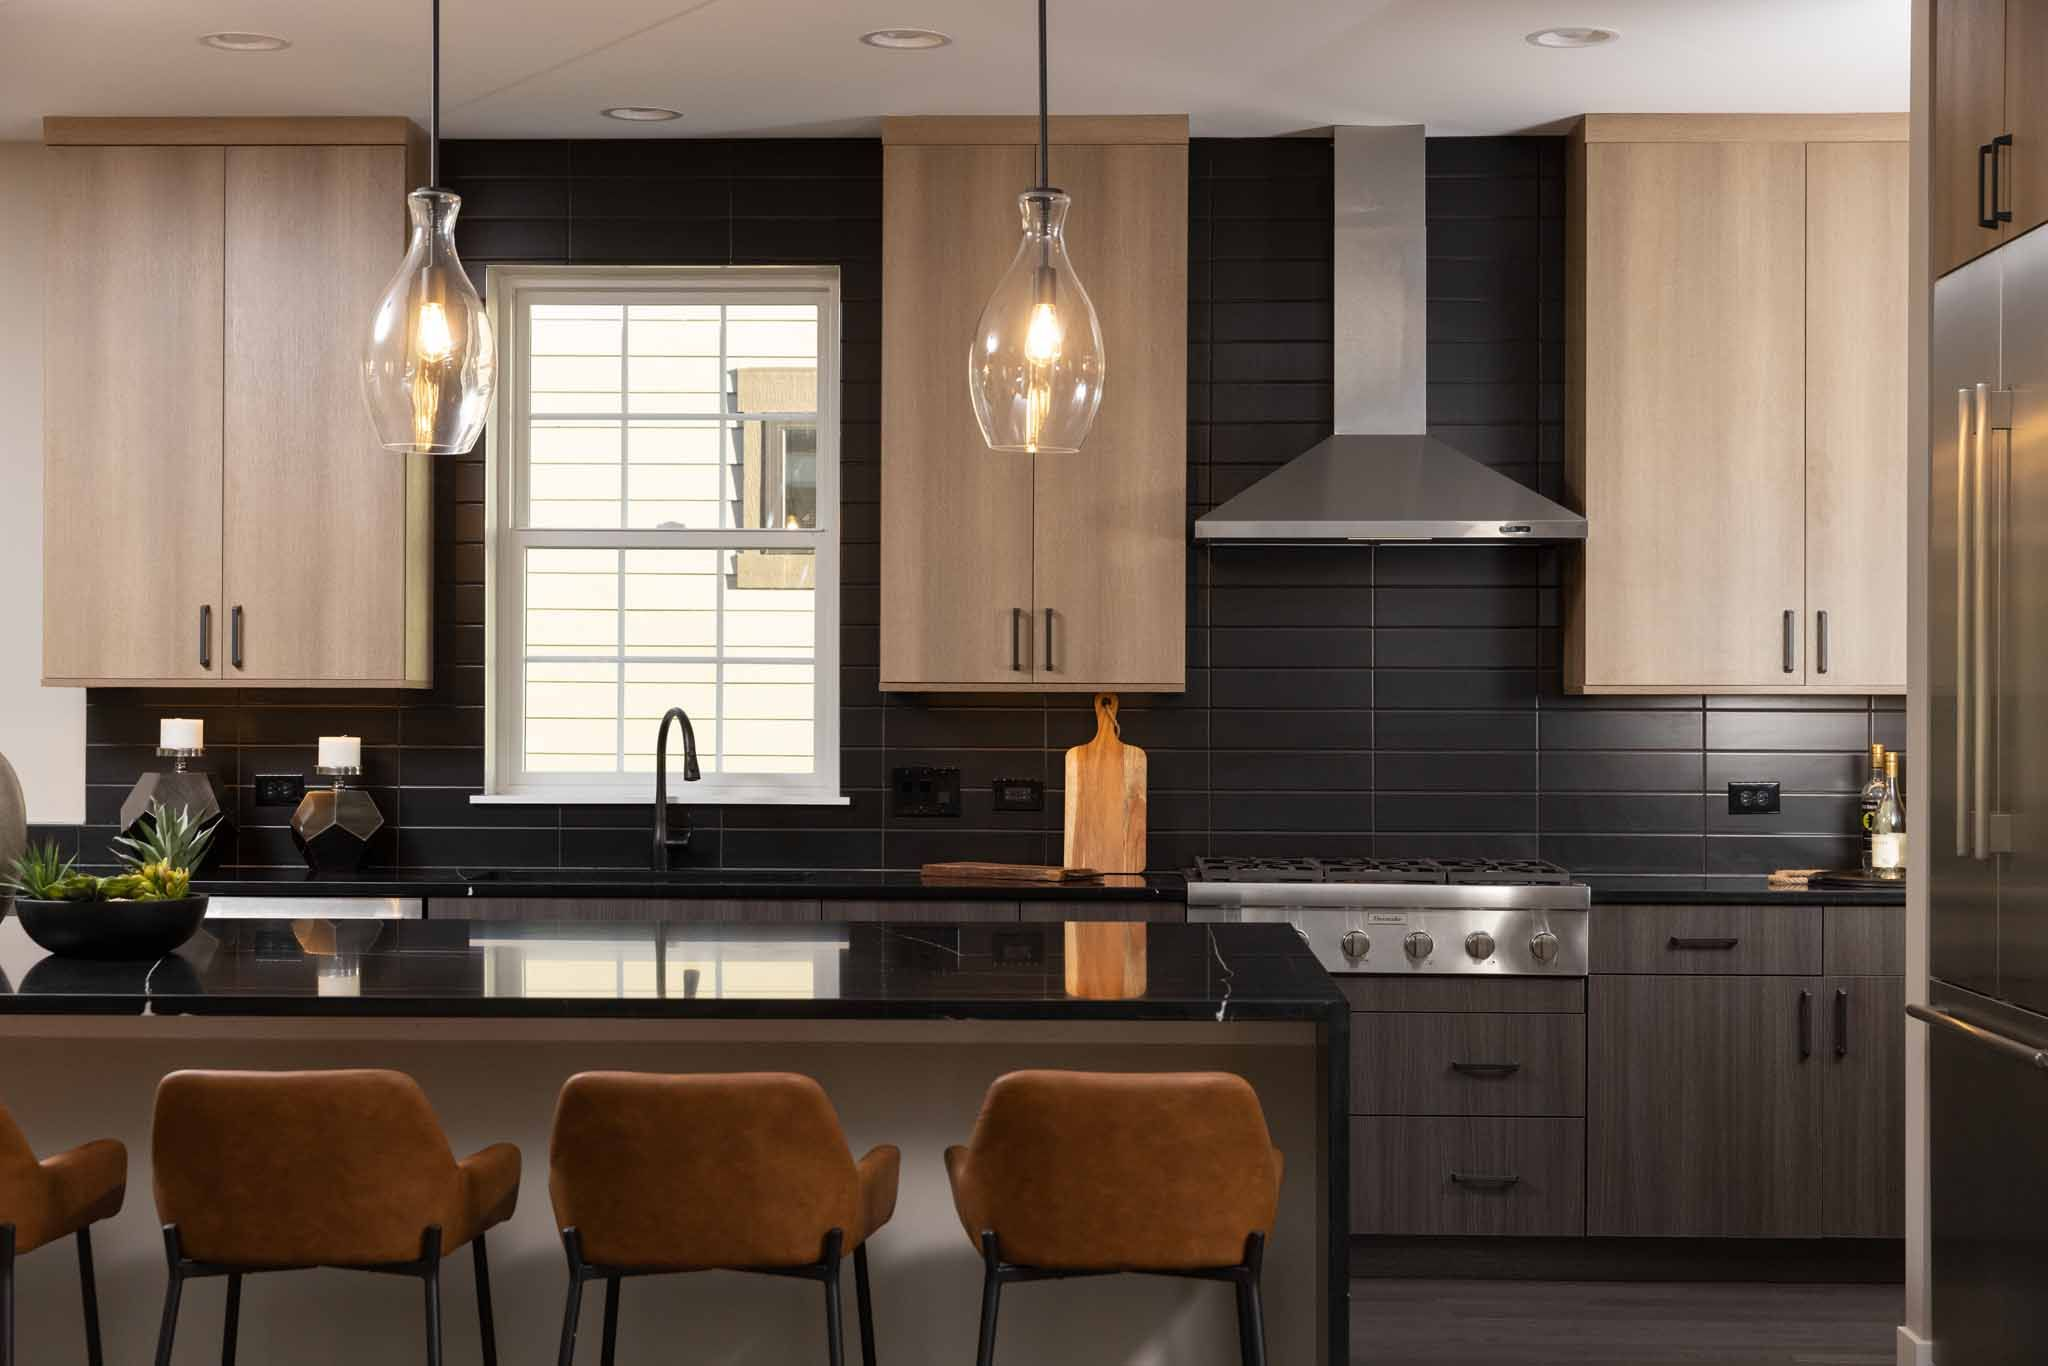 Kitchen featured in The Burgundy By Lexington Homes in Chicago, IL